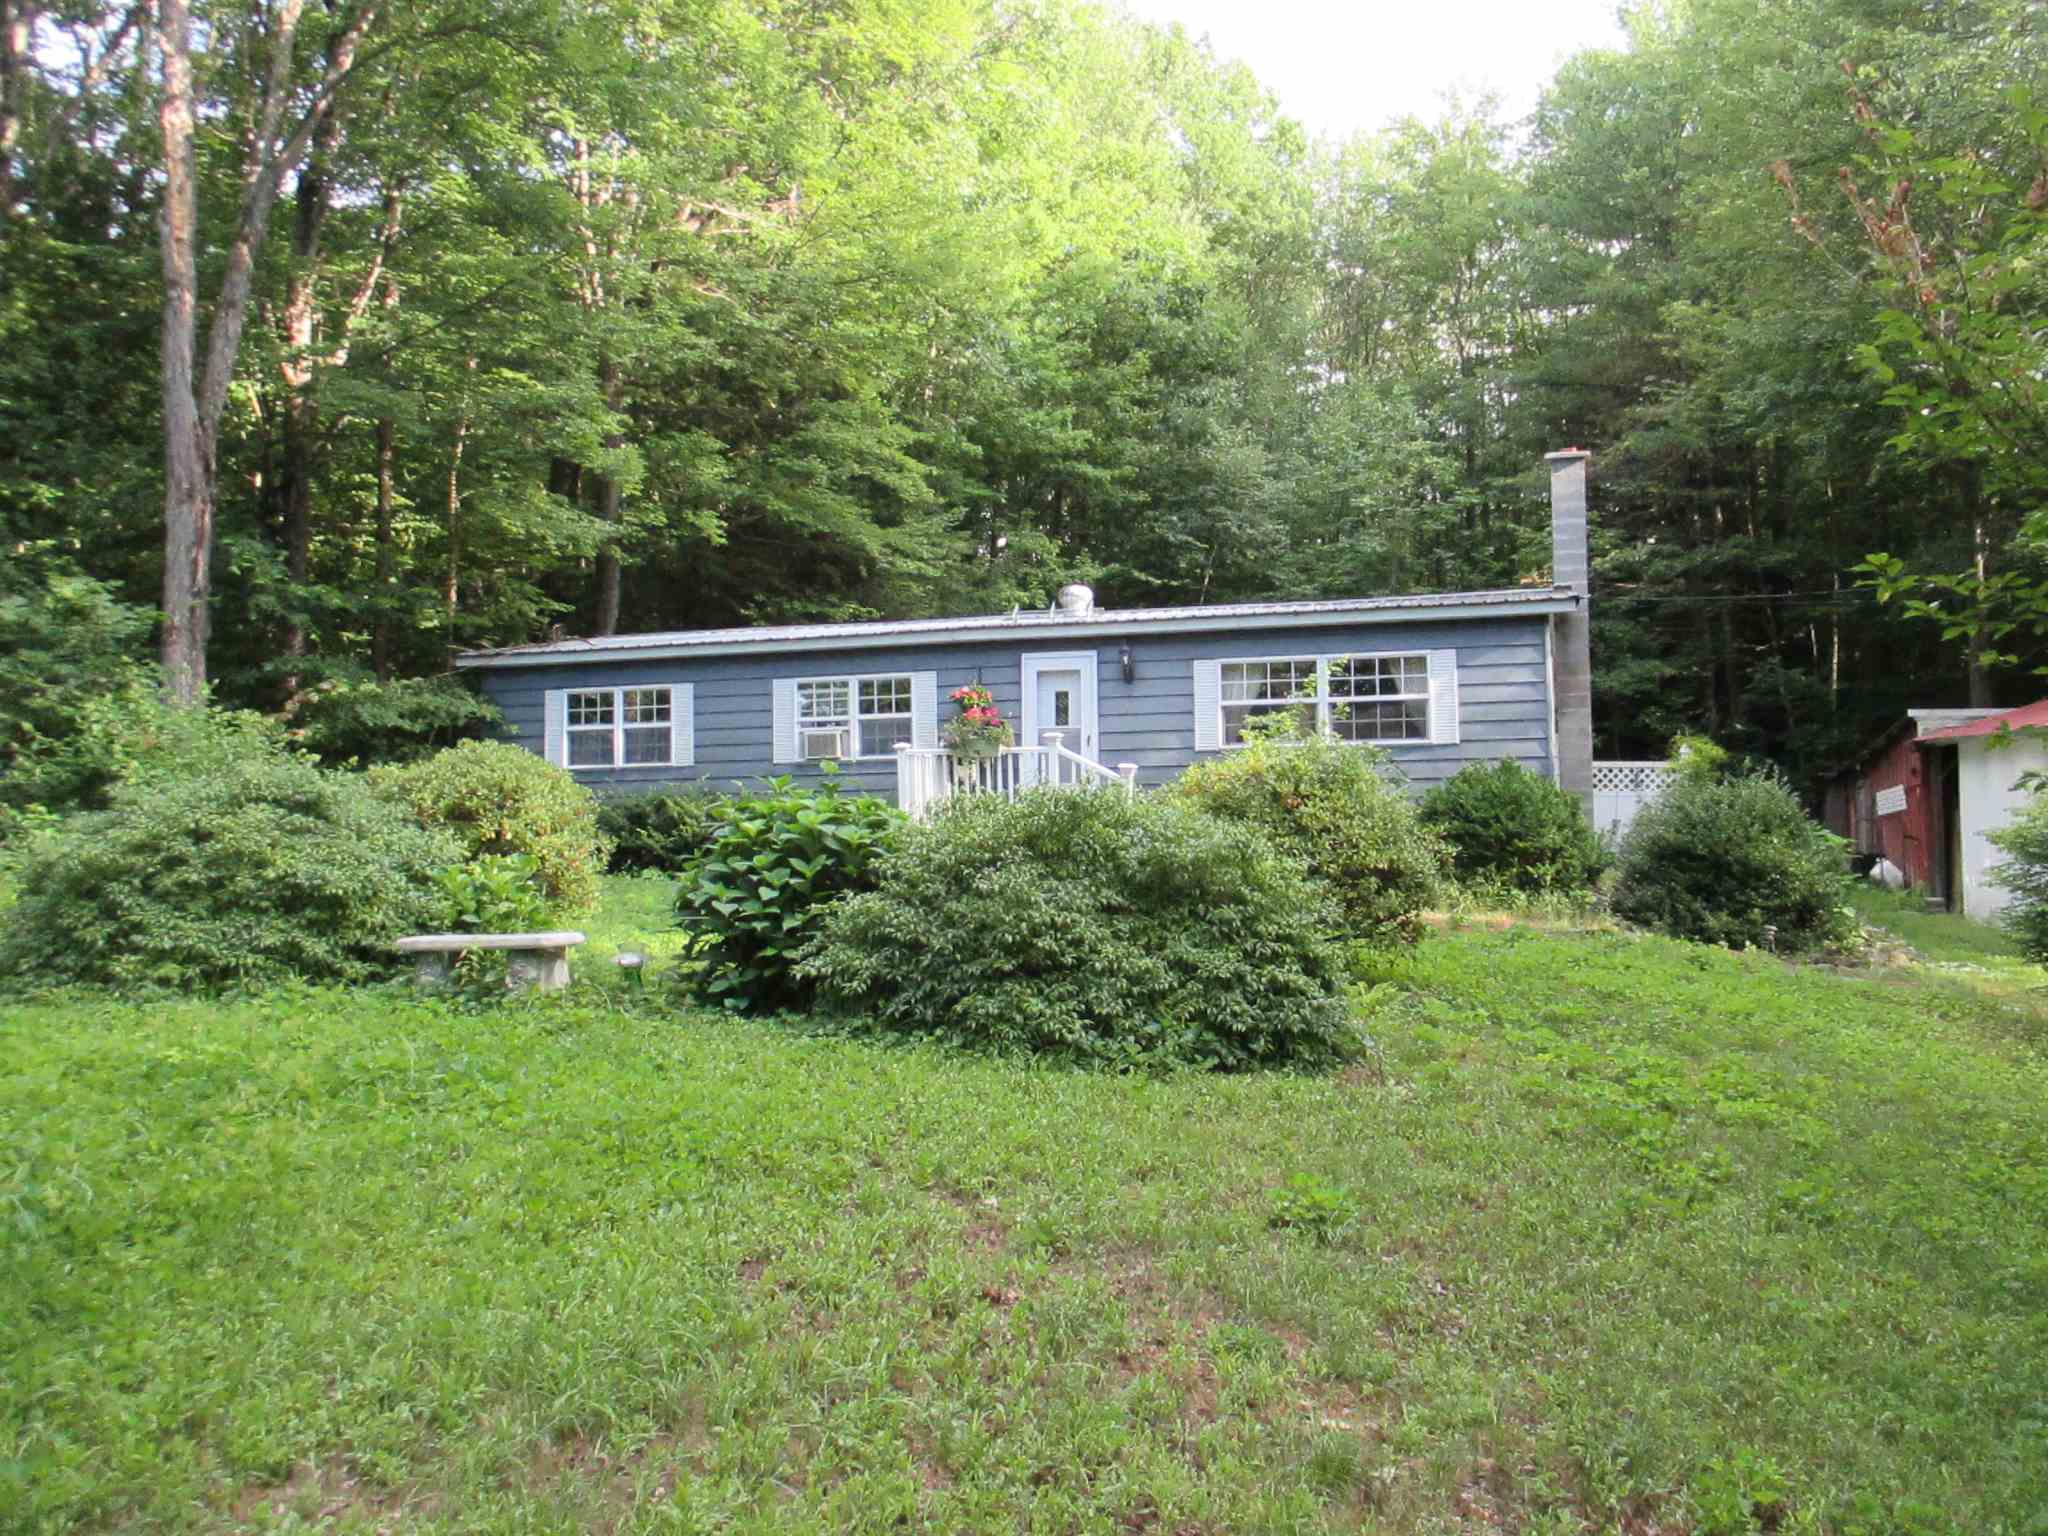 MLS 4820207: 170 Marcy Hill Road, Swanzey NH